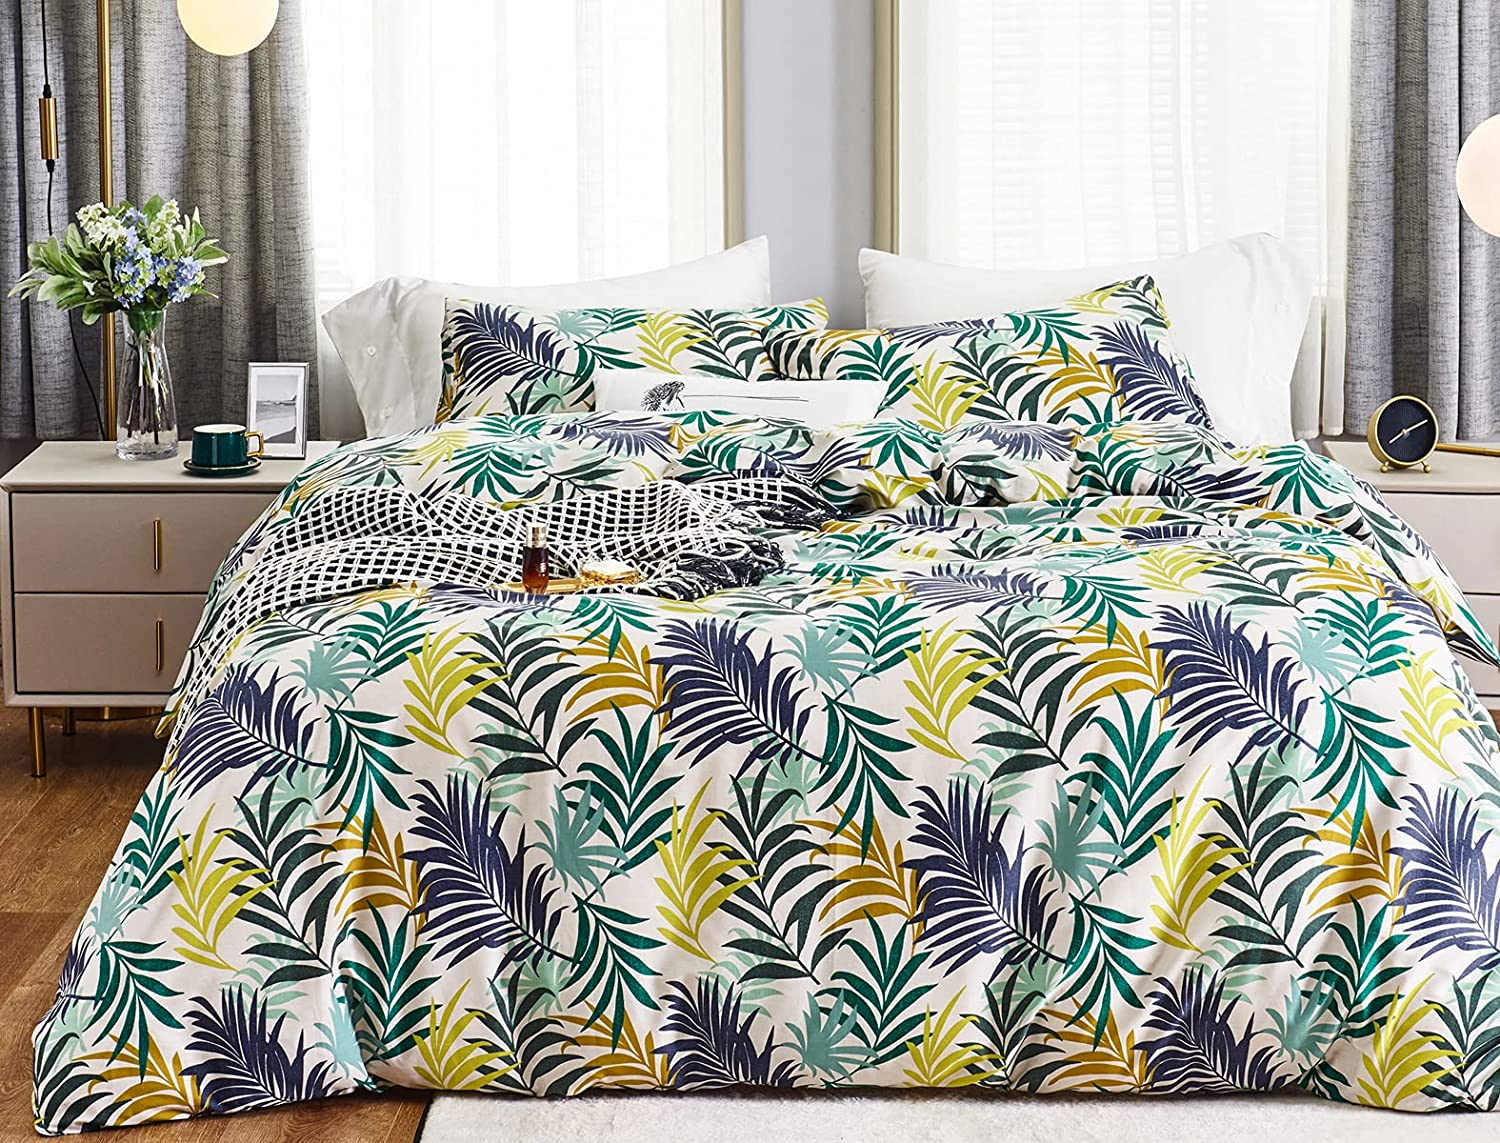 SUSYBAO 3 Piece Duvet Cover Set T Cotton 購入 2020モデル 100% King Colorful Size